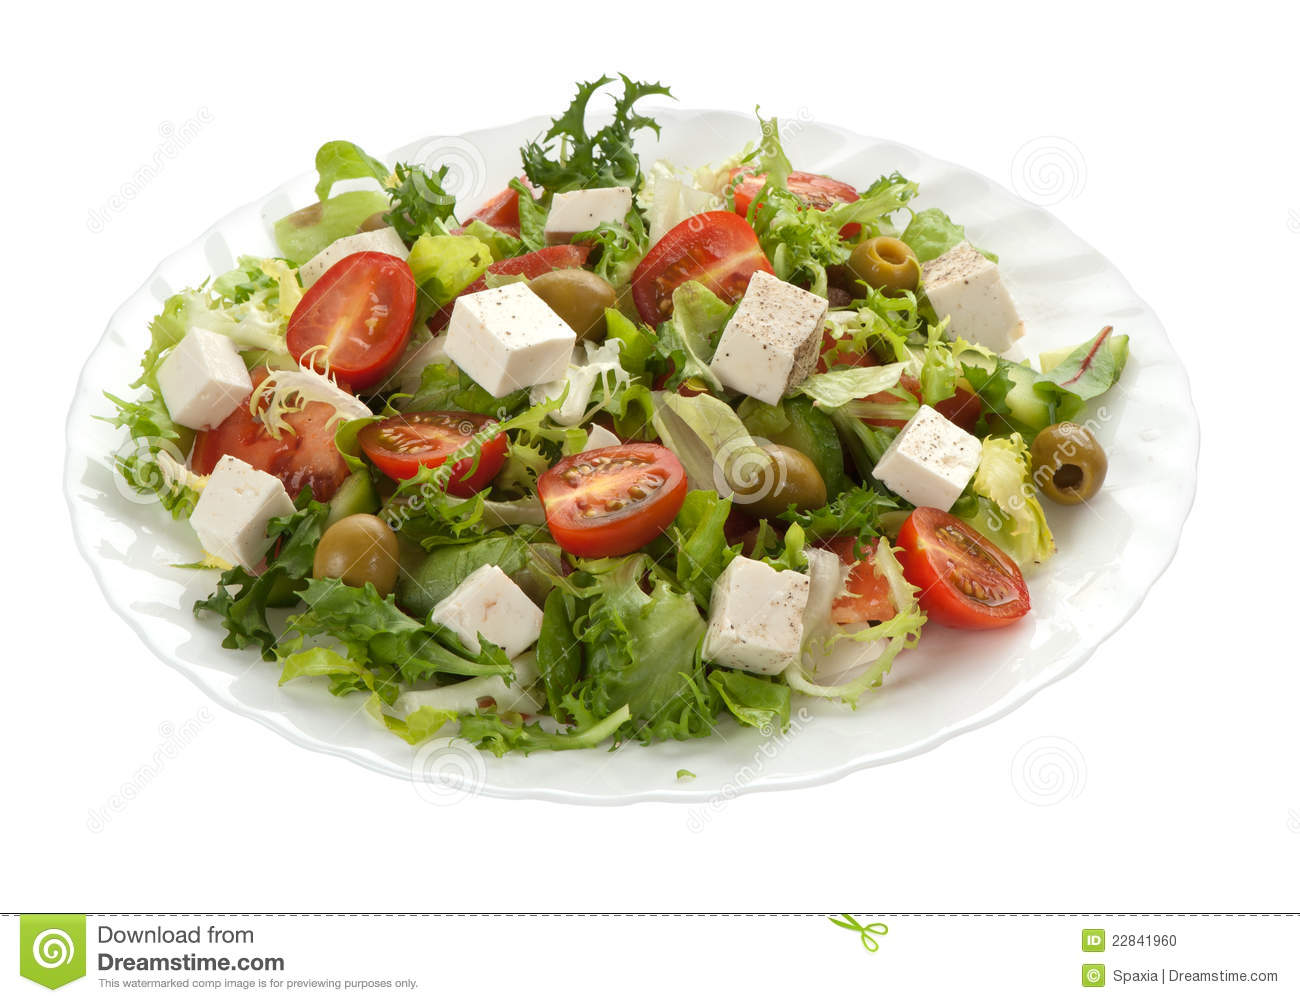 Green Salad With Feta Cheese Stock Photo - Image: 22841960